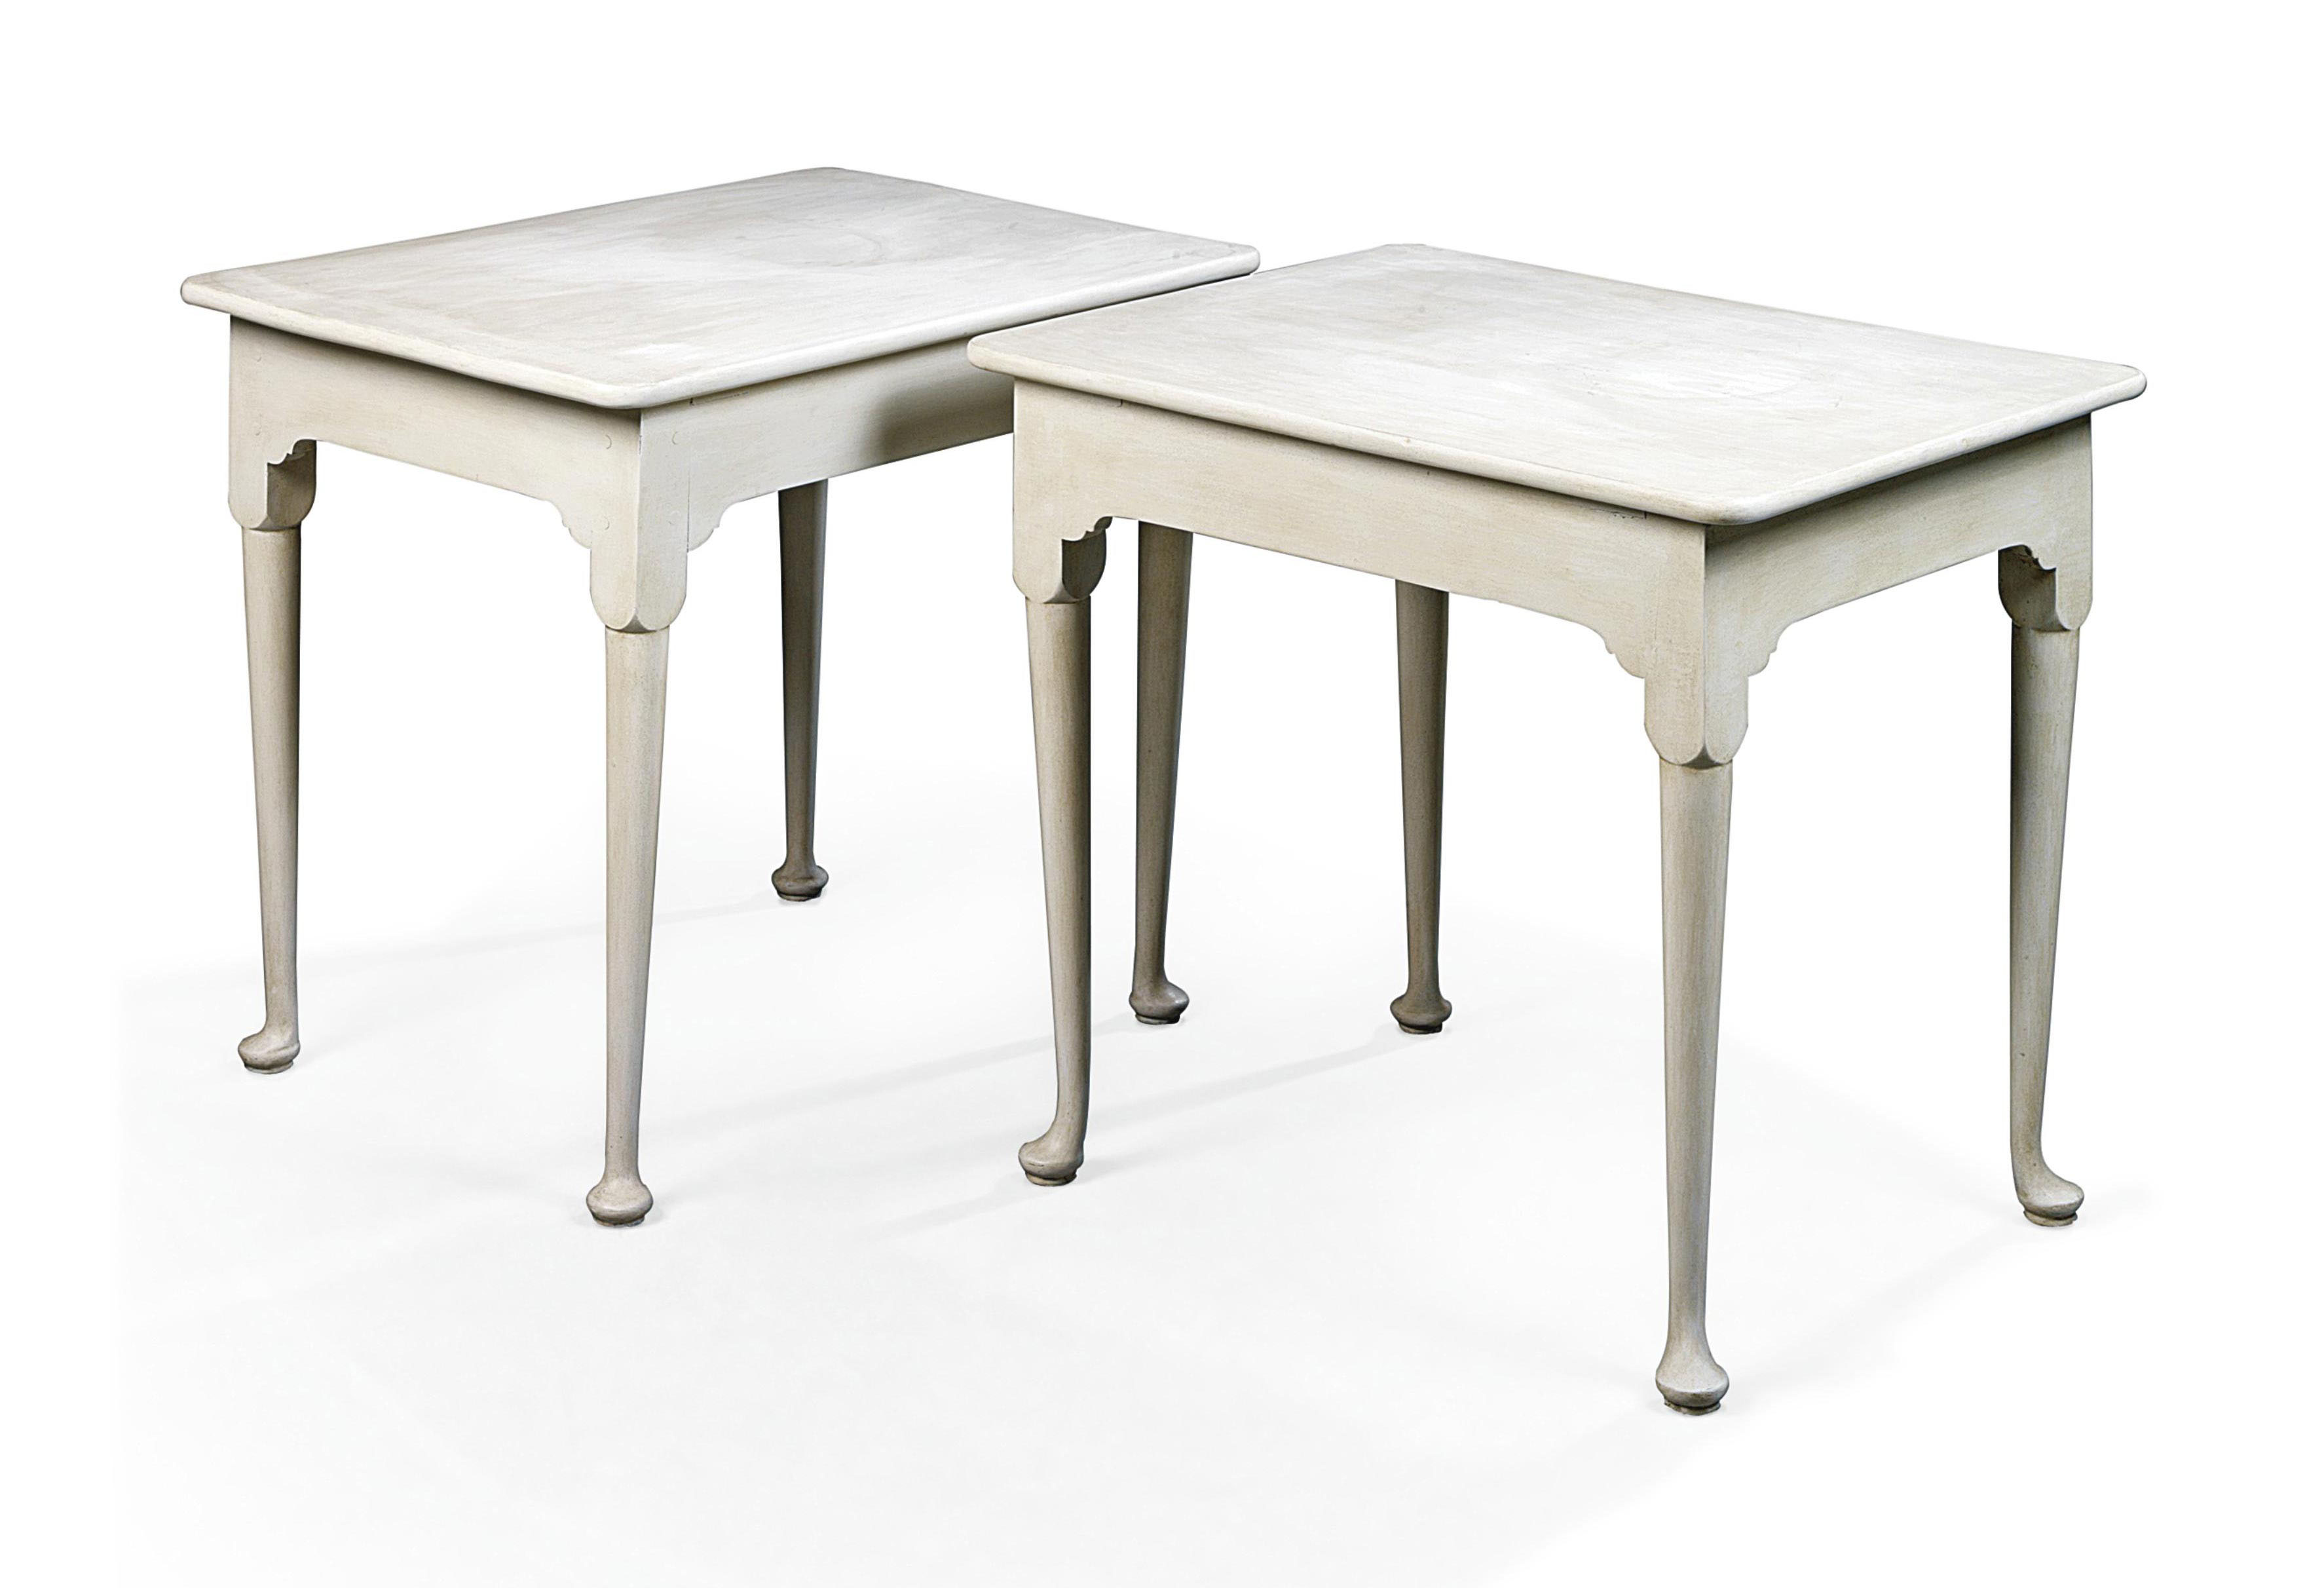 A PAIR OF GEORGE II-STYLE WHITE-PAINTED OCCASIONAL TABLES